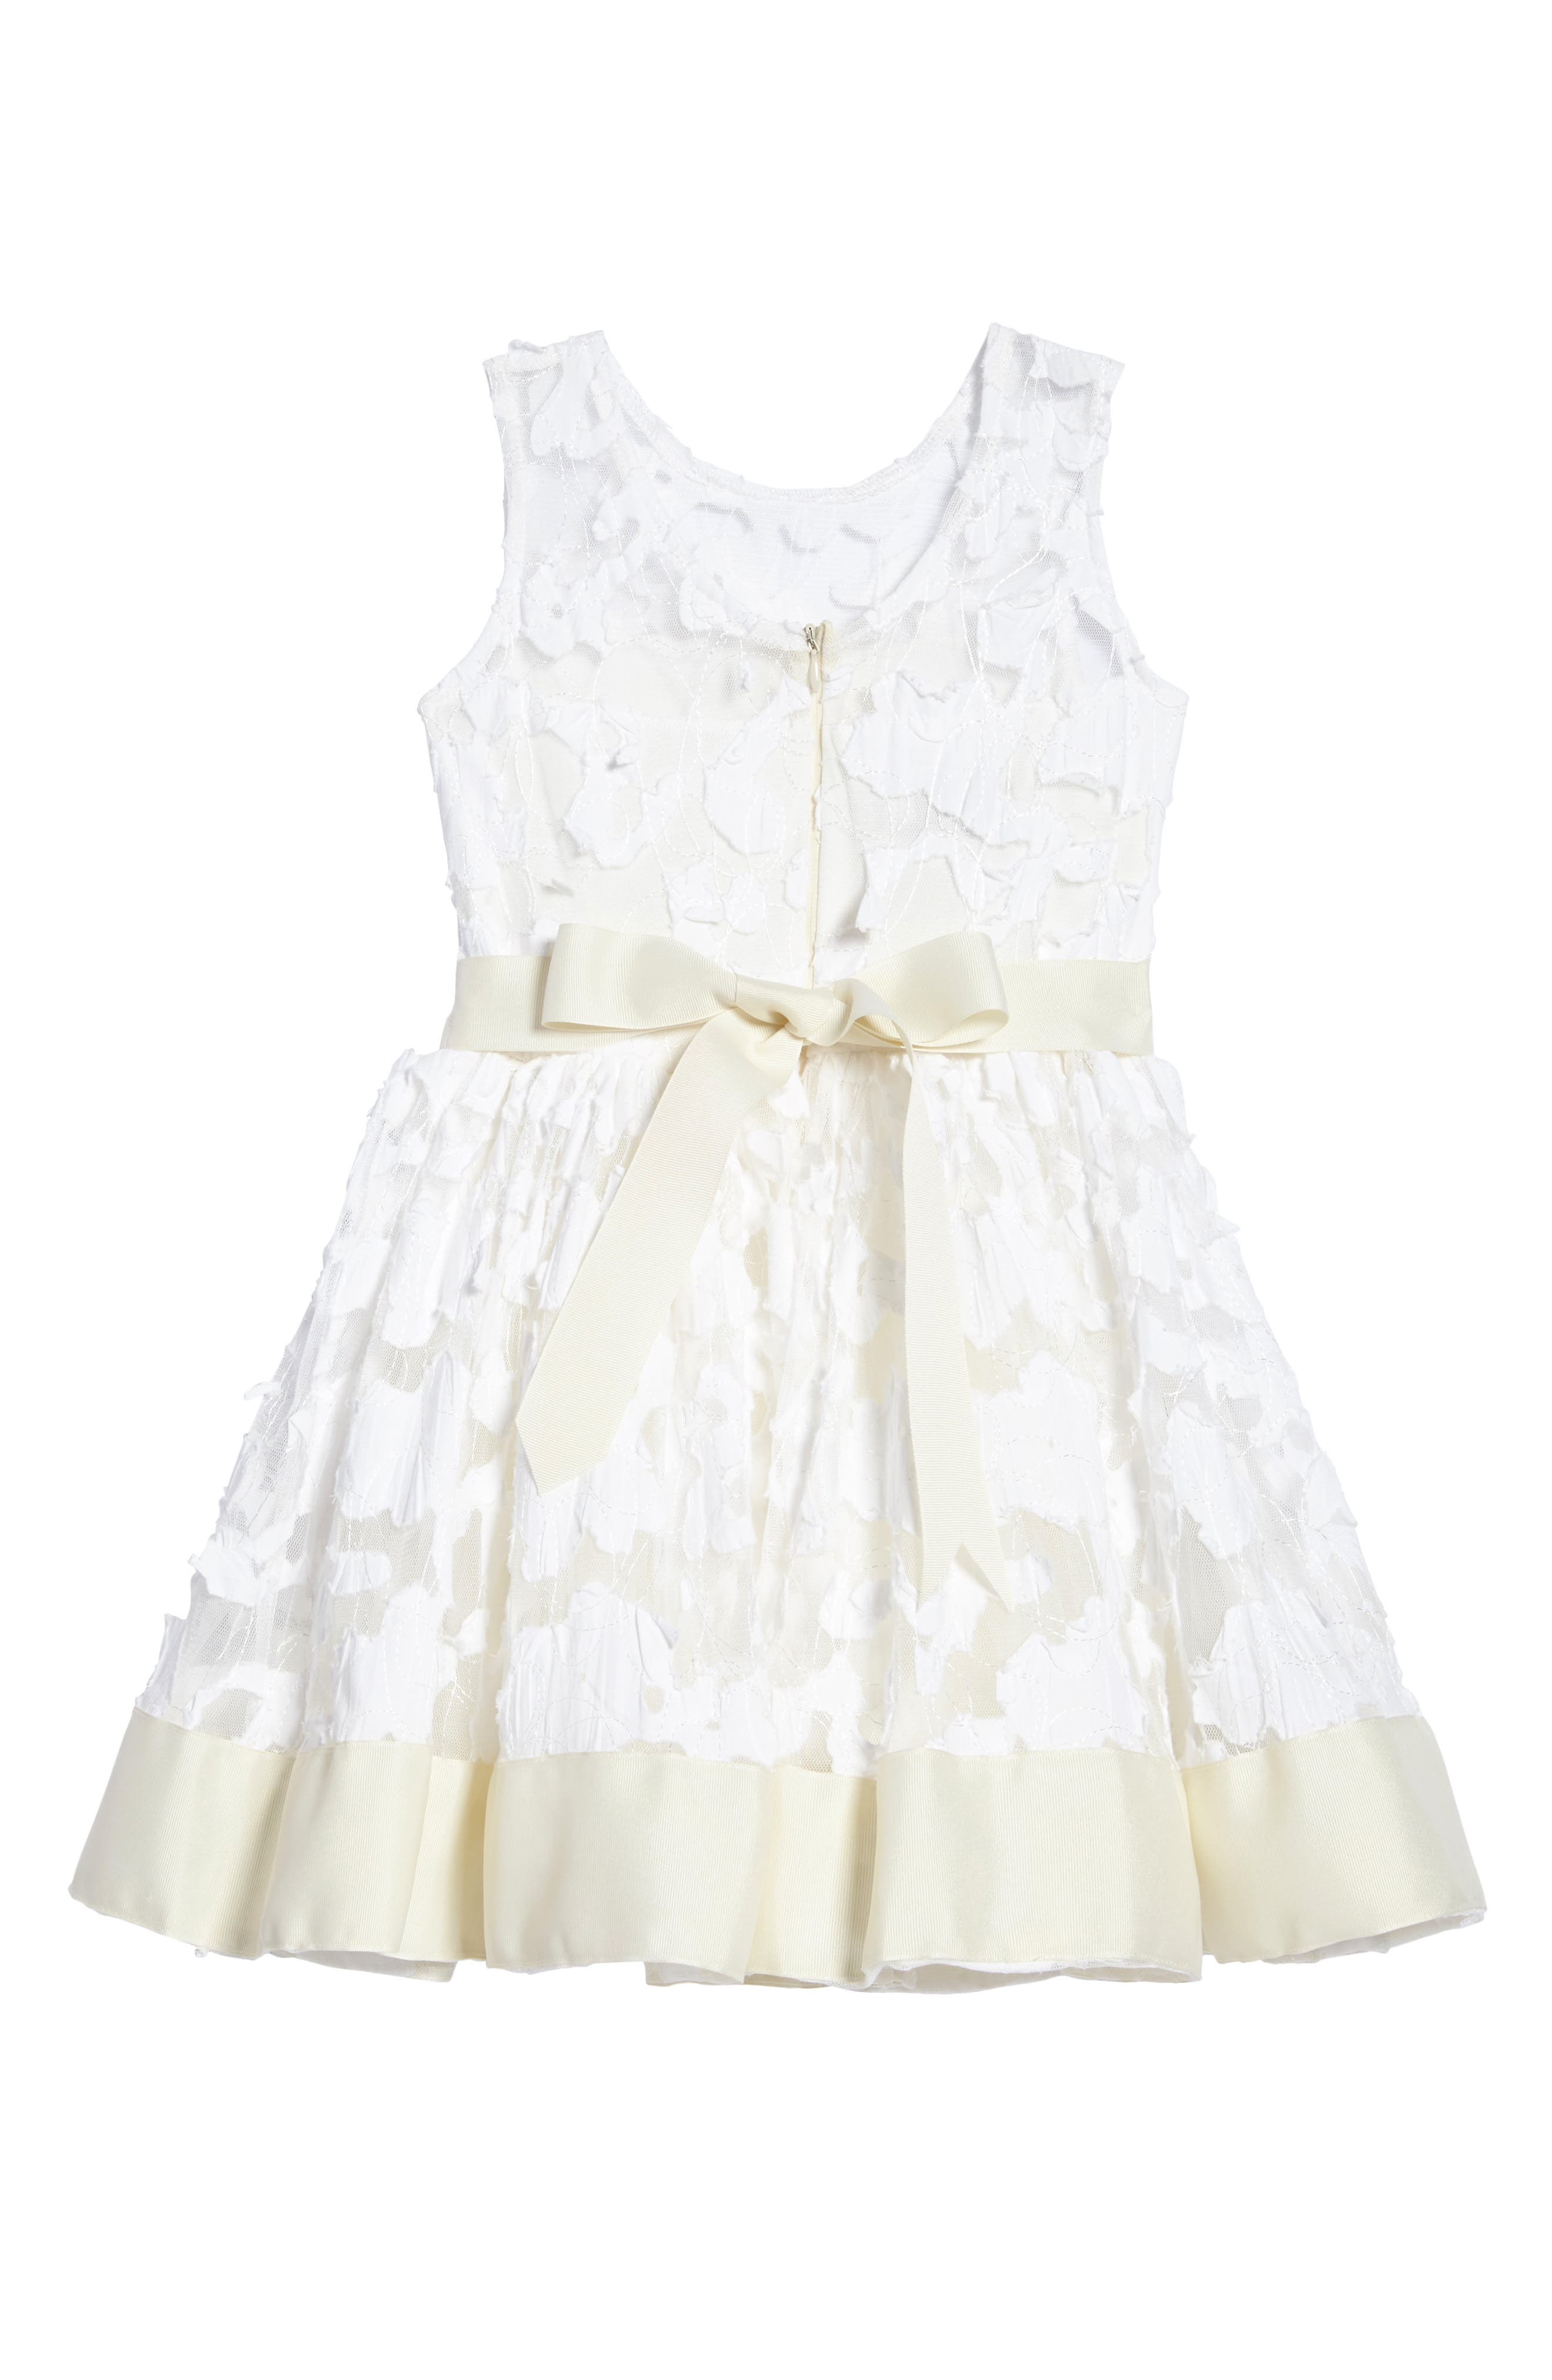 'Pretty in Ivory' Party Dress,                             Alternate thumbnail 2, color,                             900